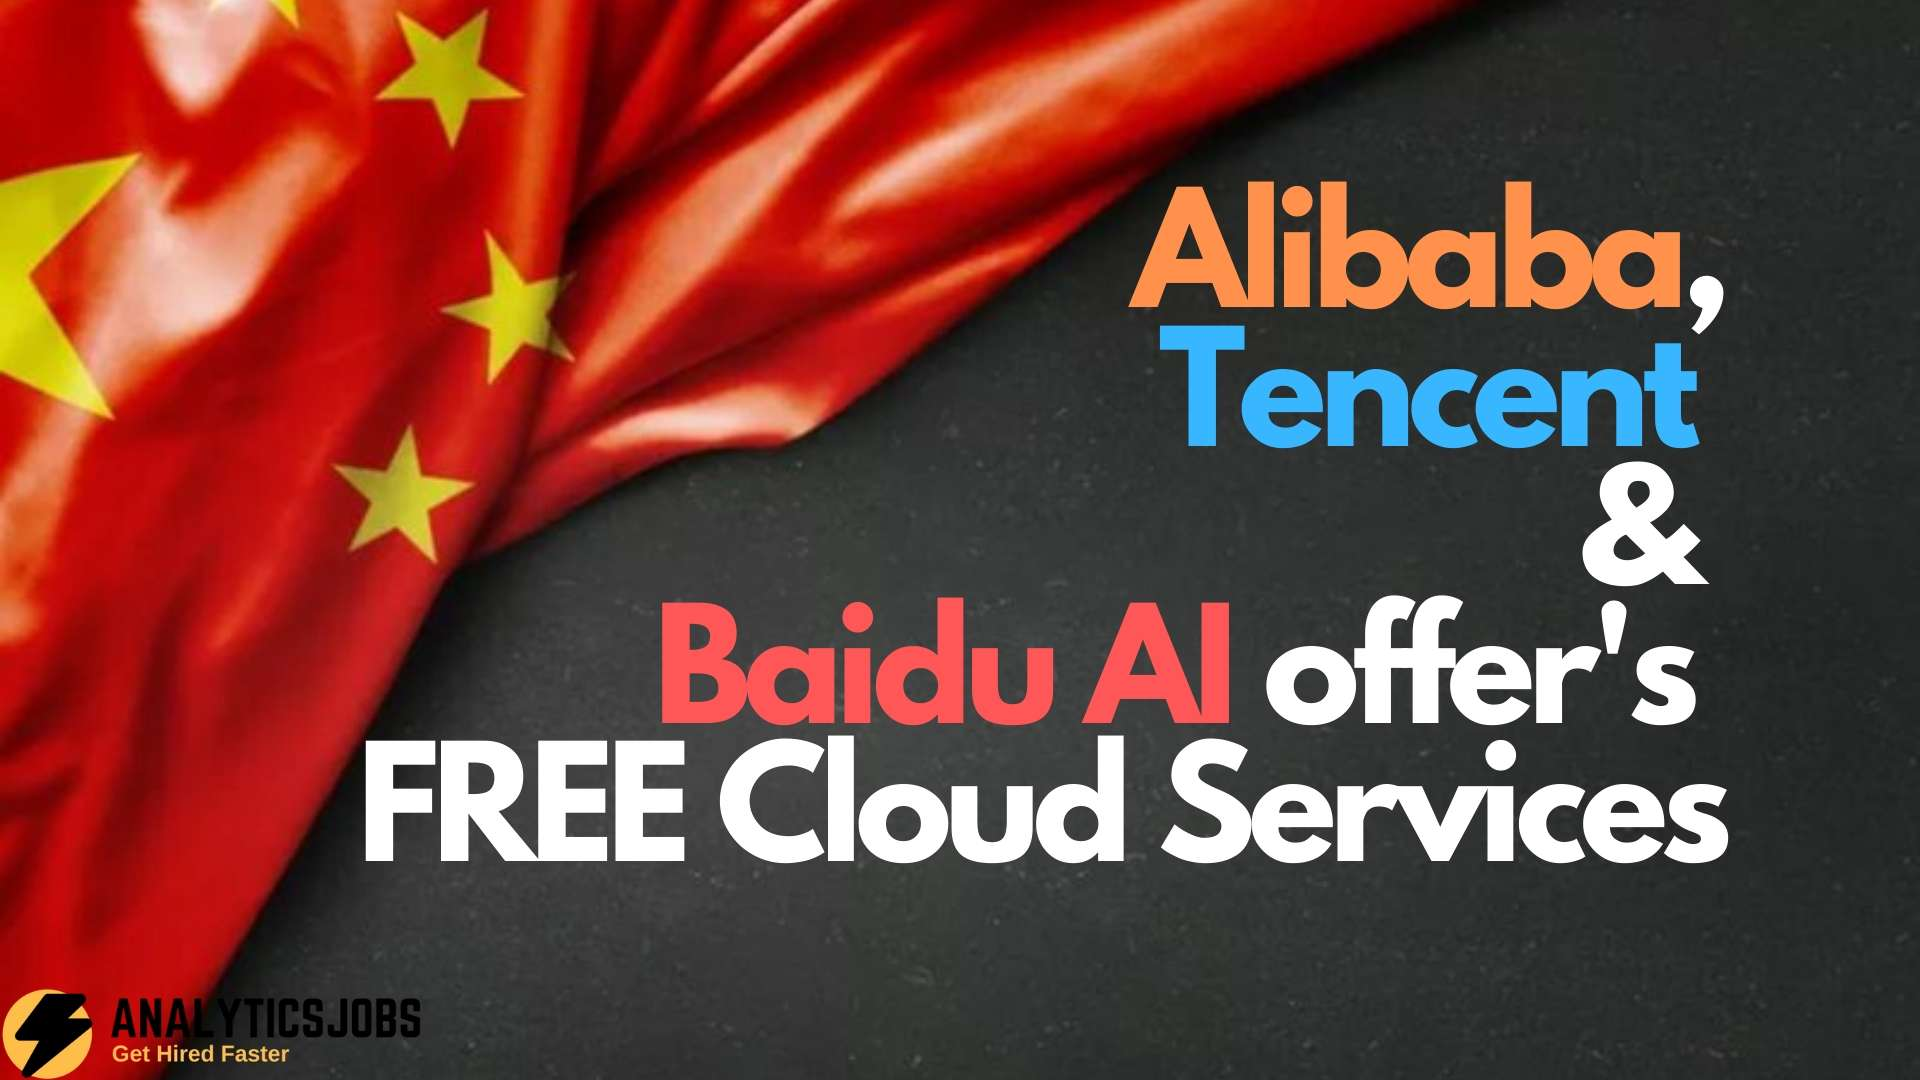 Alibaba, Tencent and Baidu AI offer's FREE Cloud Services to Face the CORONAVIRUS Pandemic